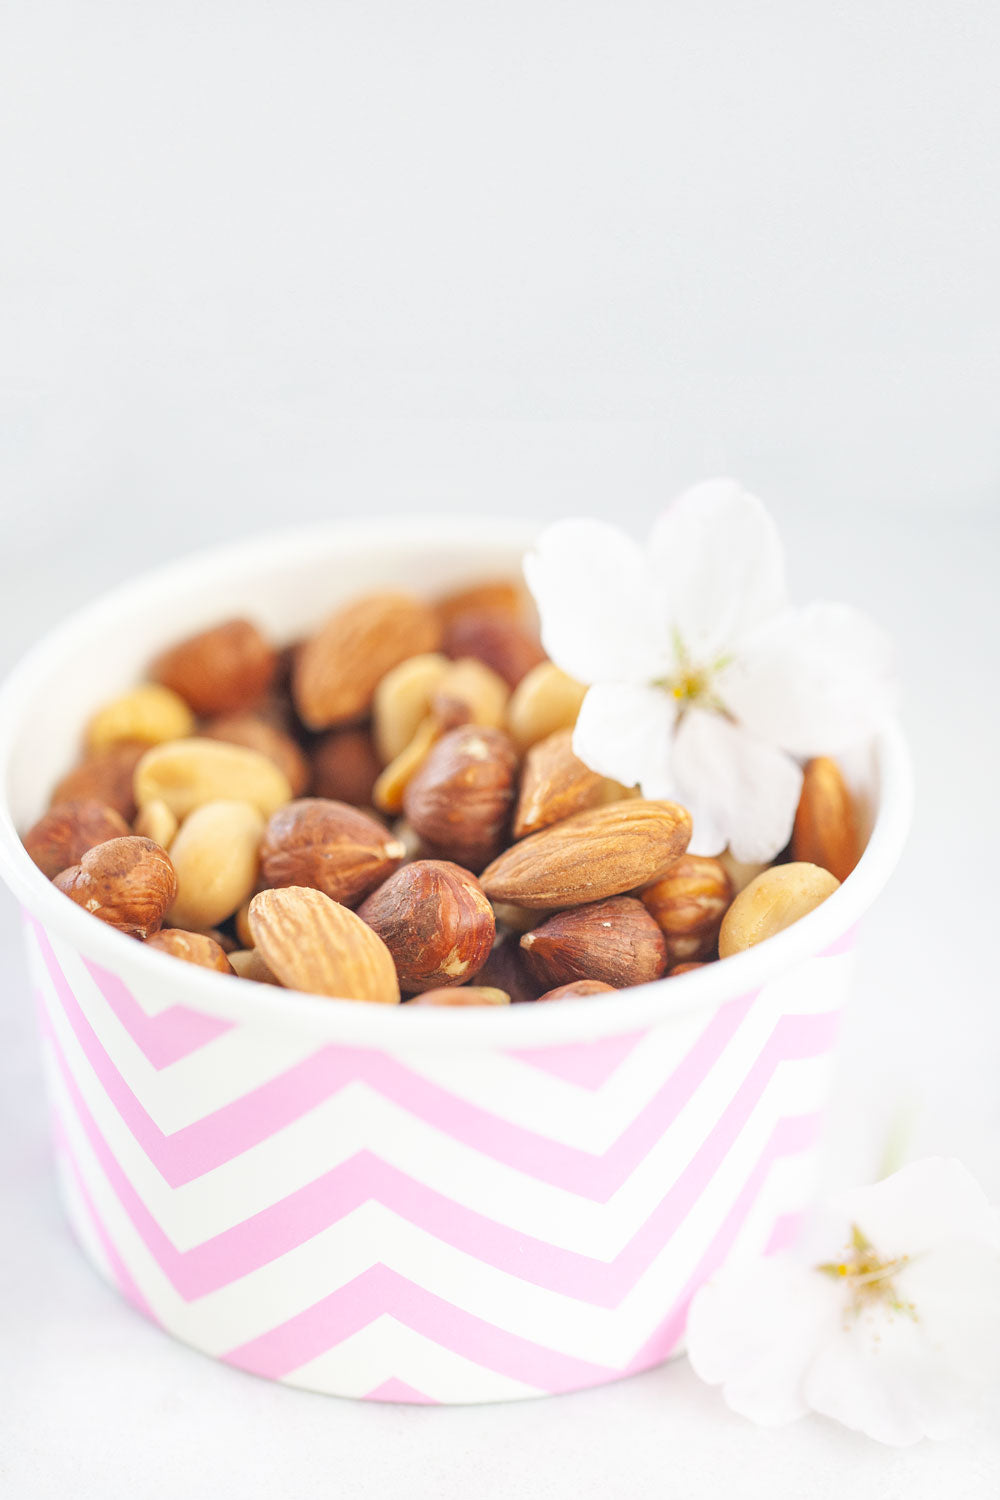 Nuts in a Pink Paper Cup